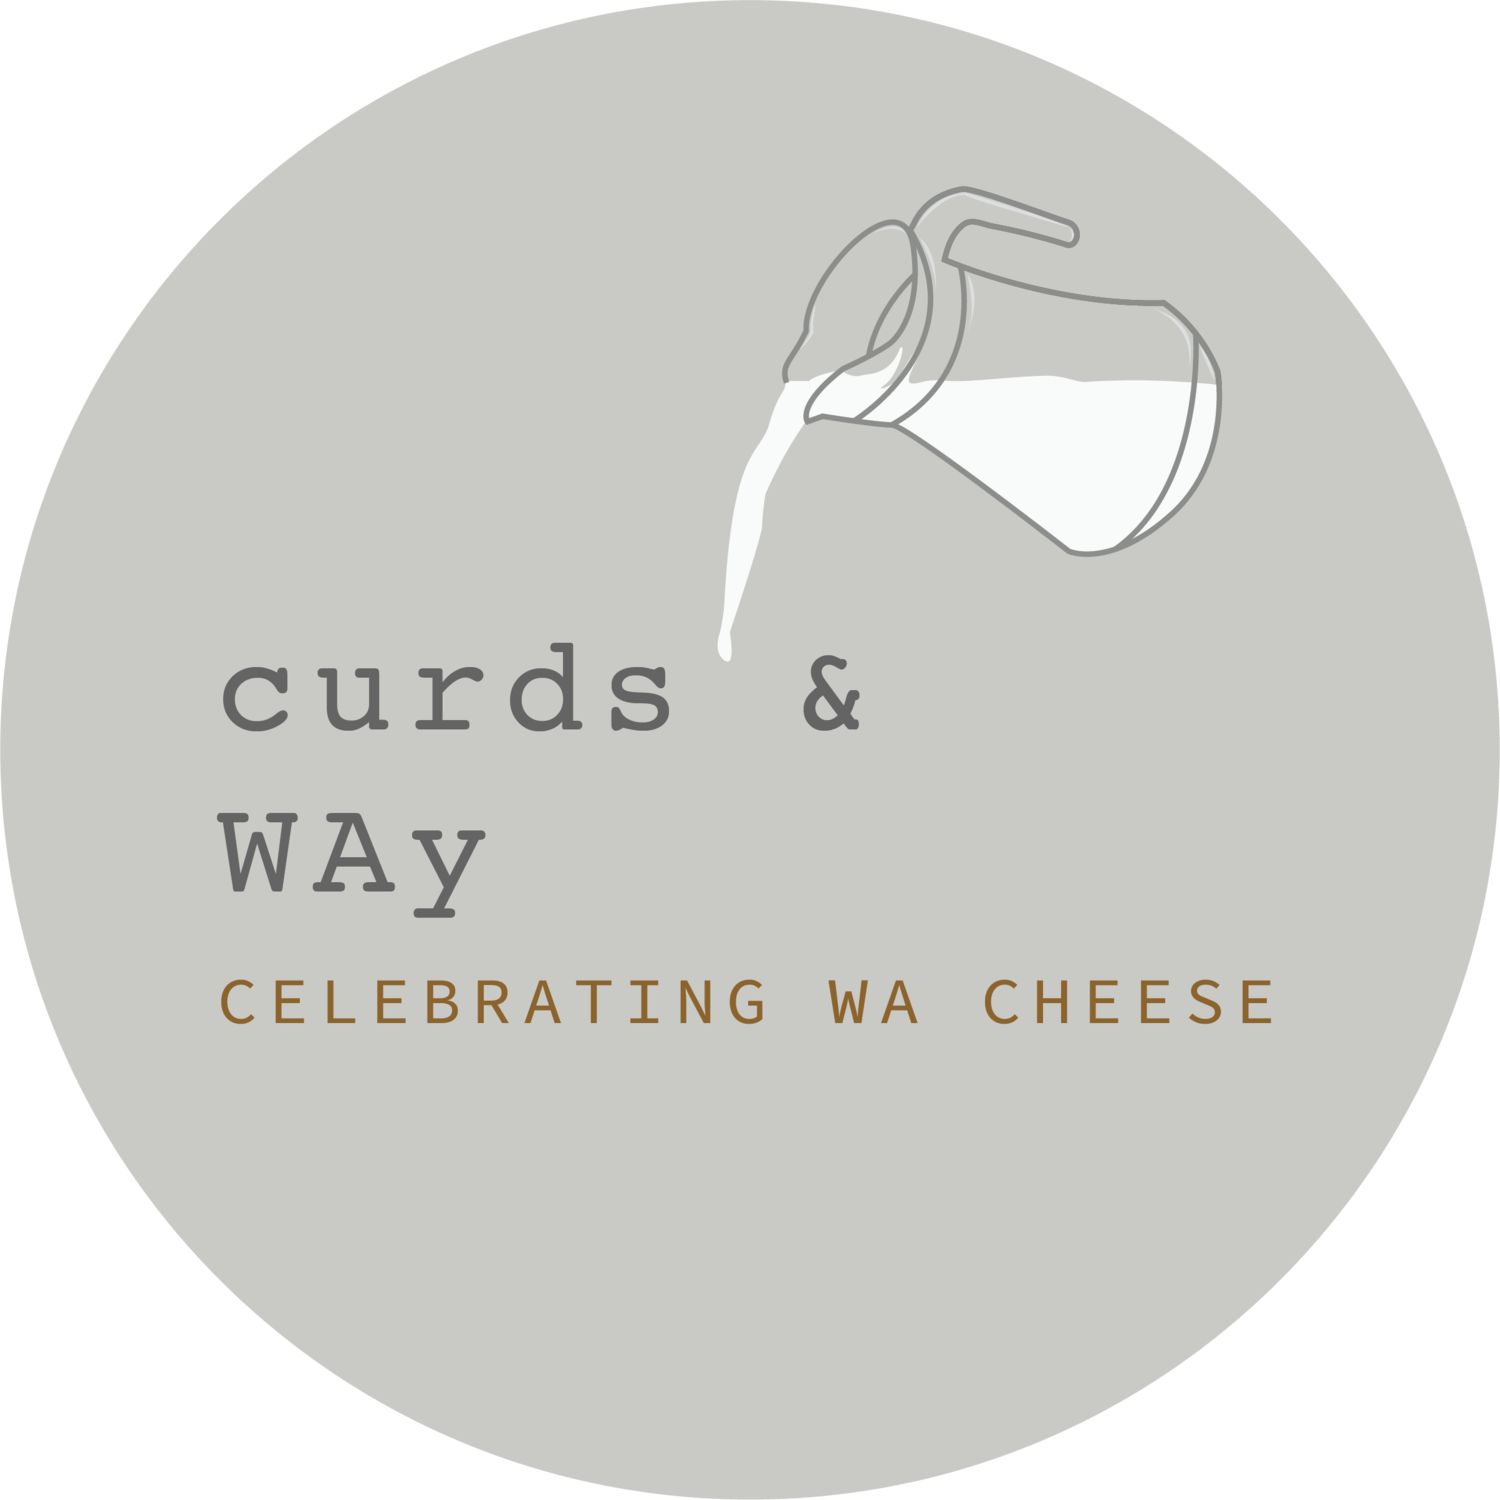 curds & WAy